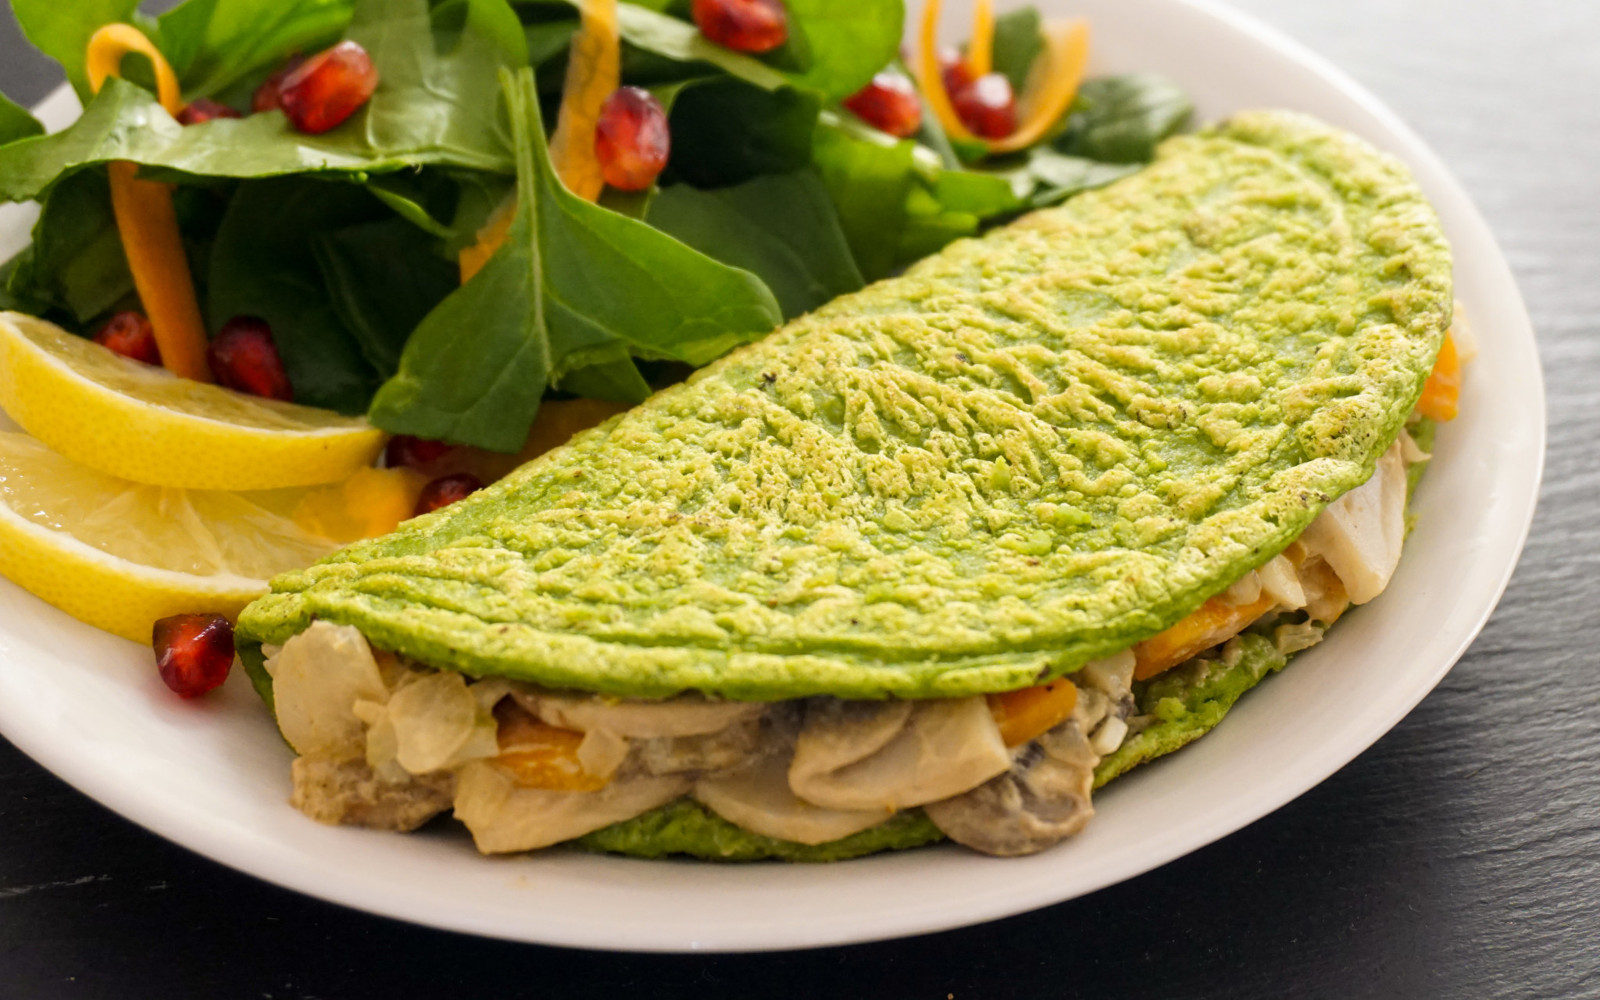 White Bean and Oat Omelet With Creamy Mushroom Filling